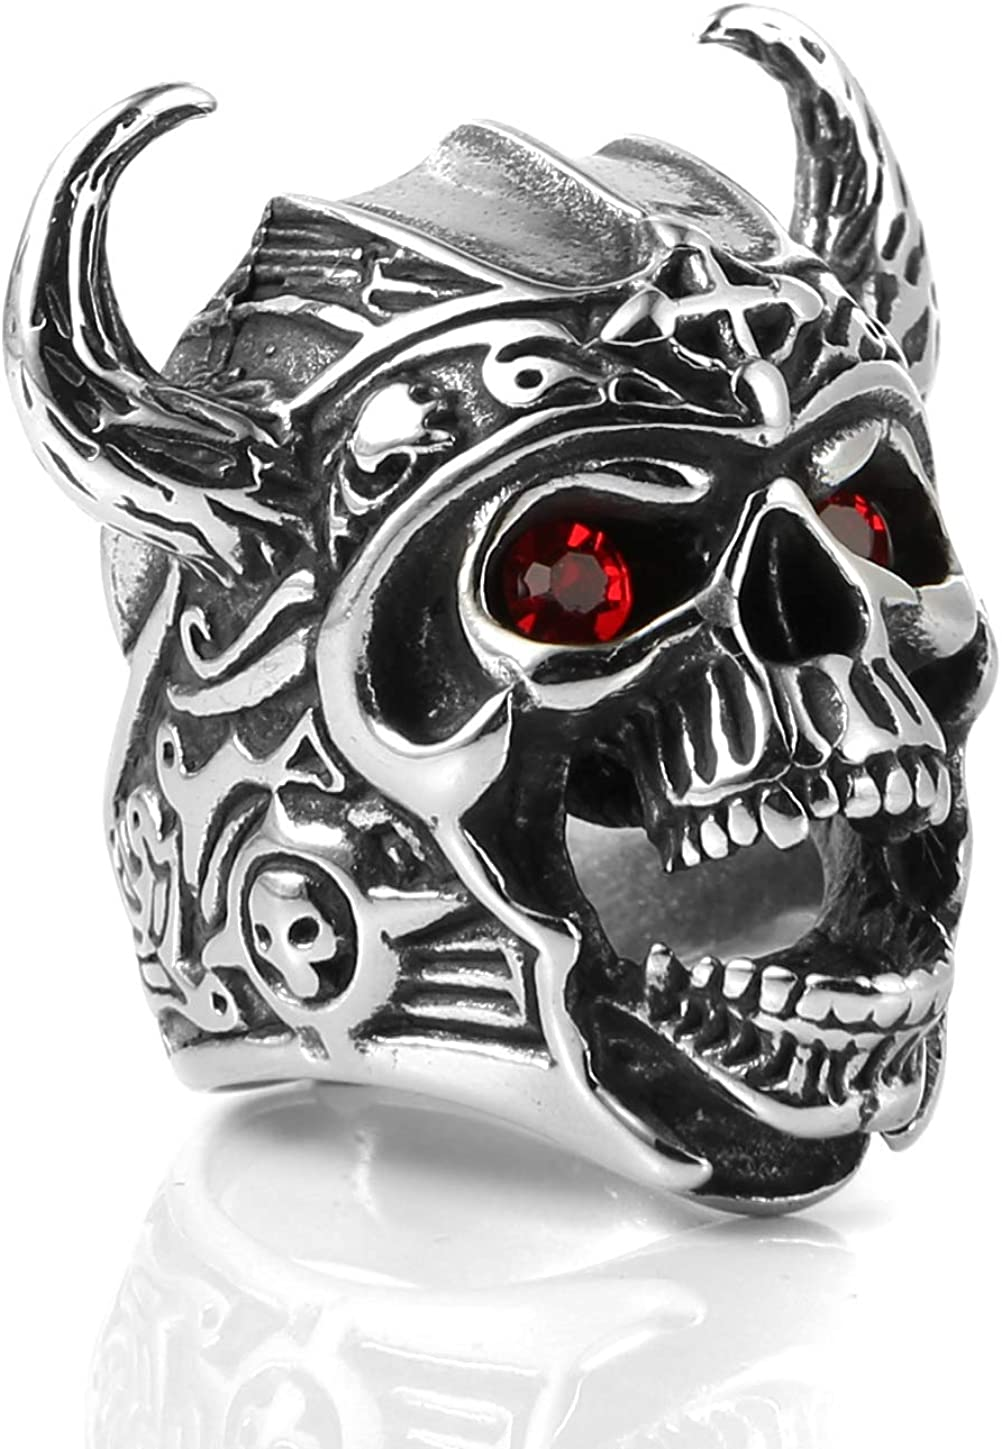 HZMAN Men's Stainless Steel Ruby Eyes Skull Cross Ring Knights Templar Helmet Warrior Ring